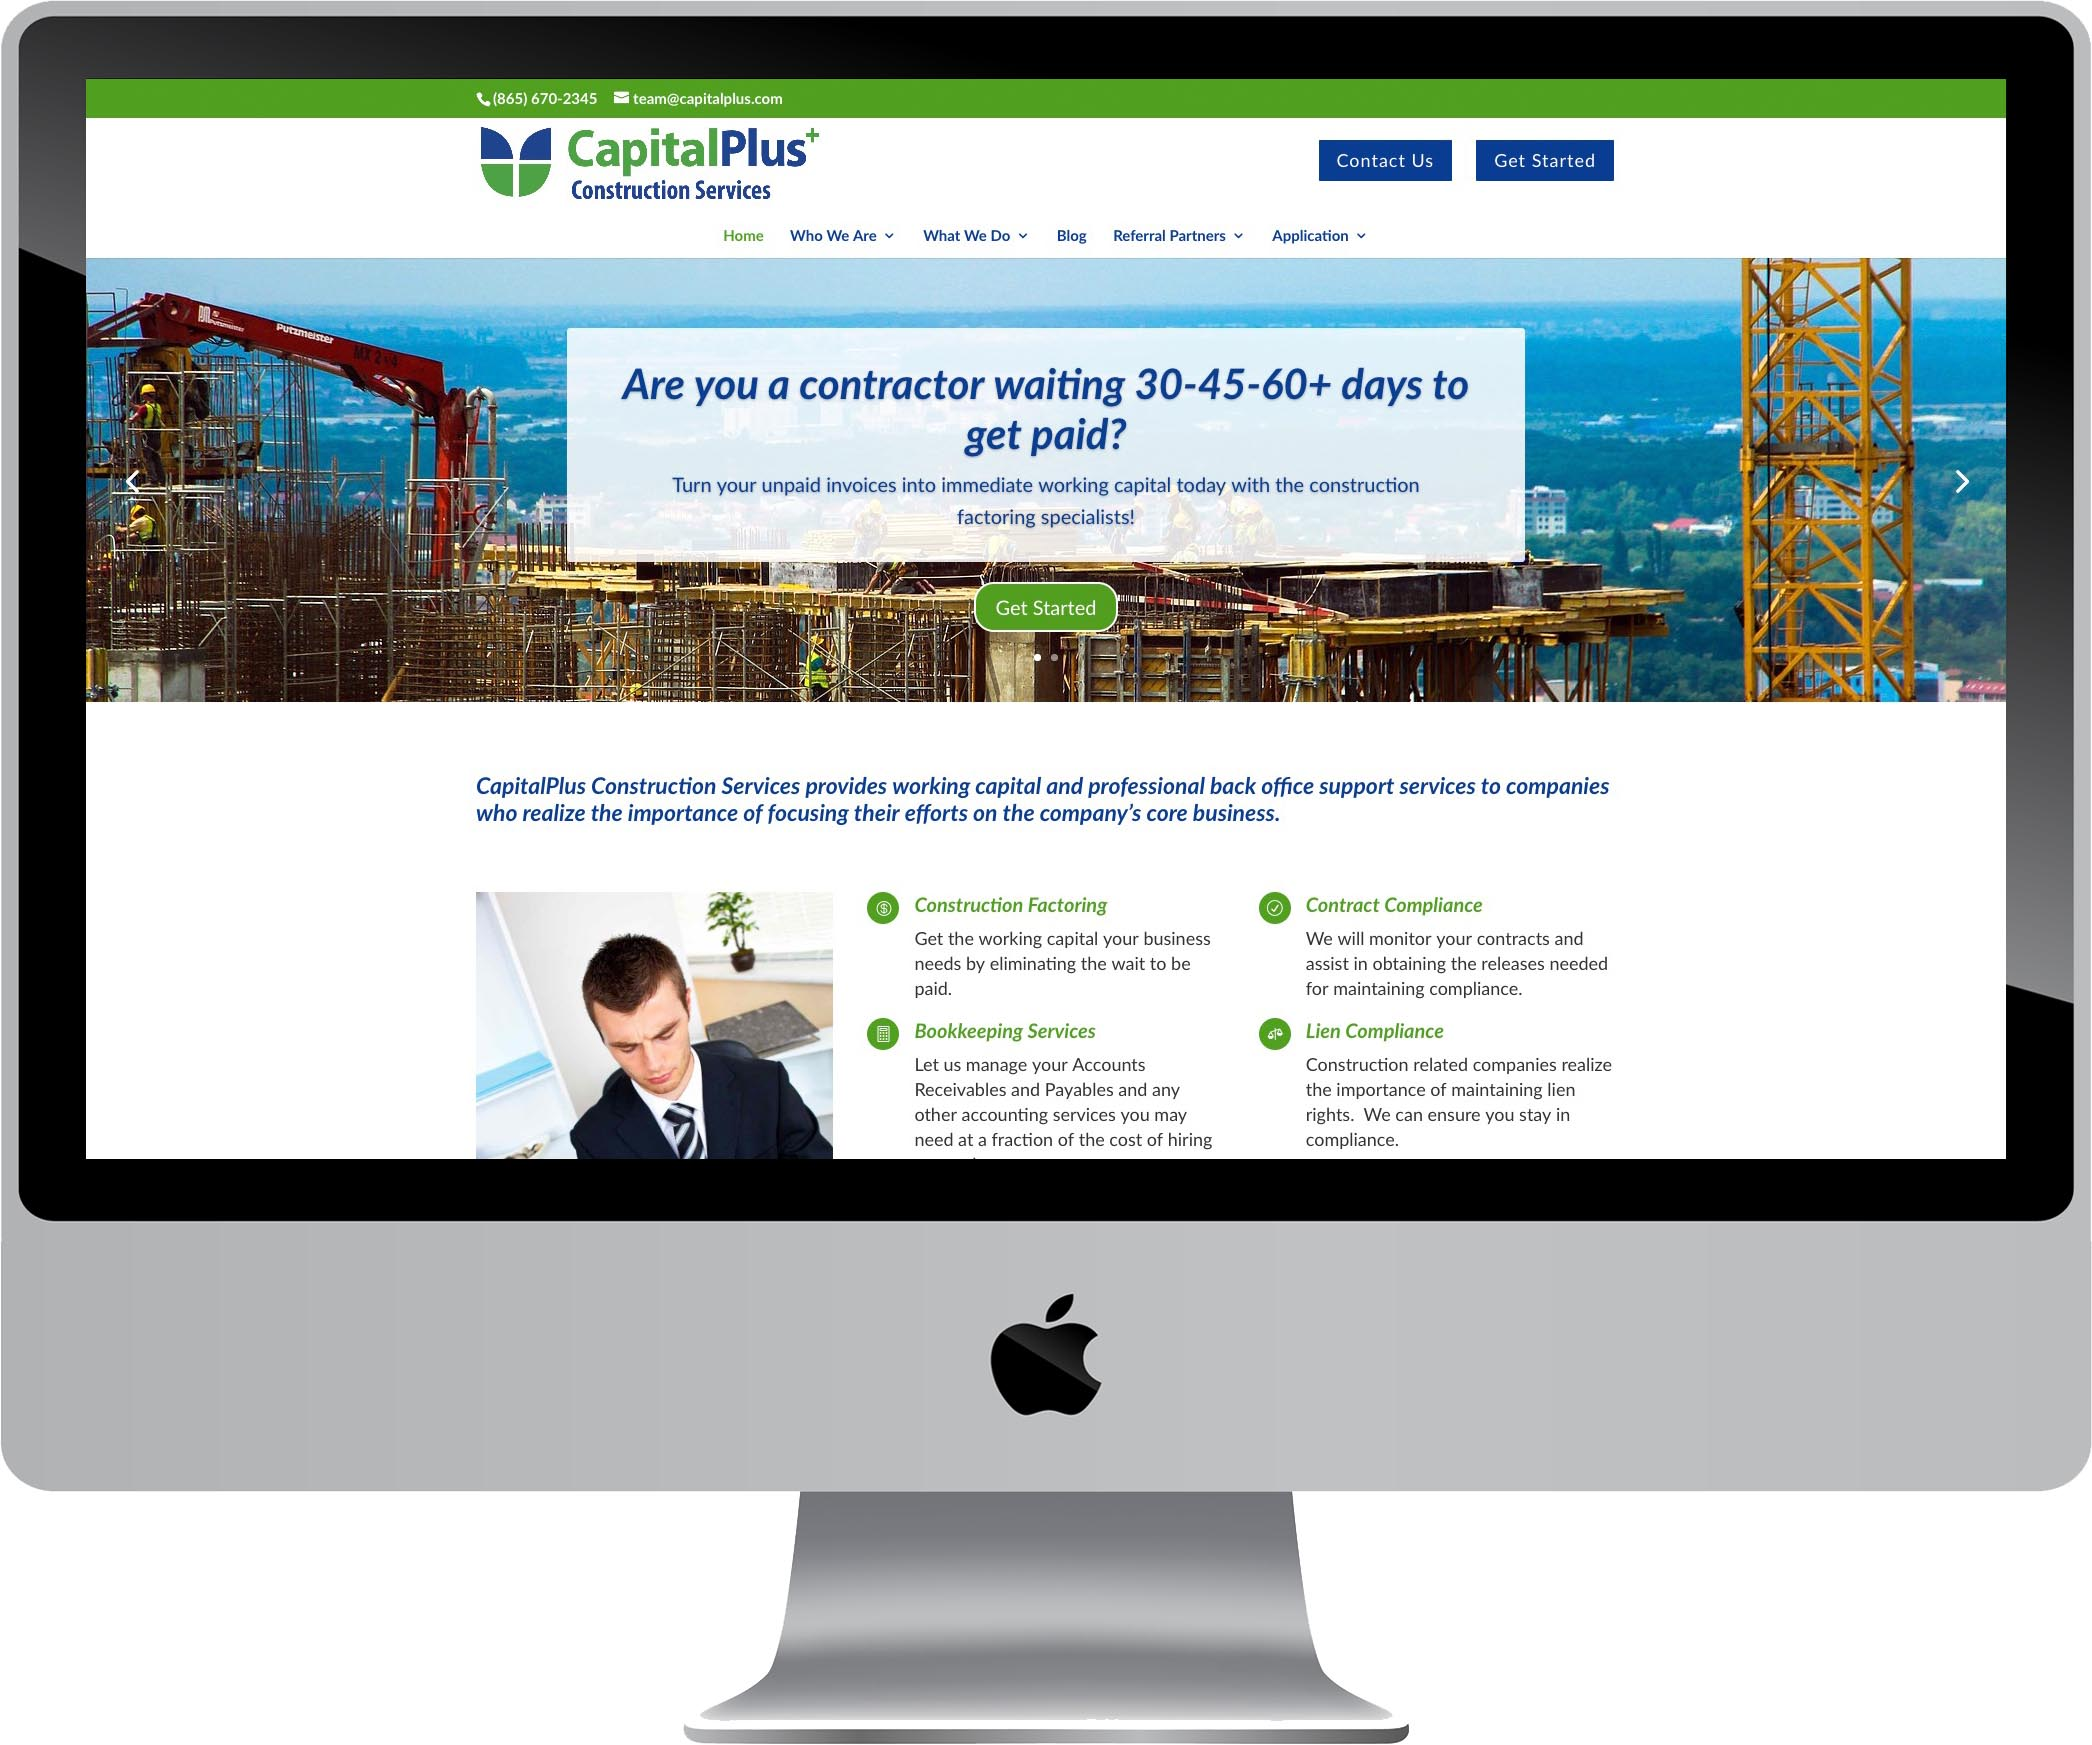 CapitalPlus Website Design